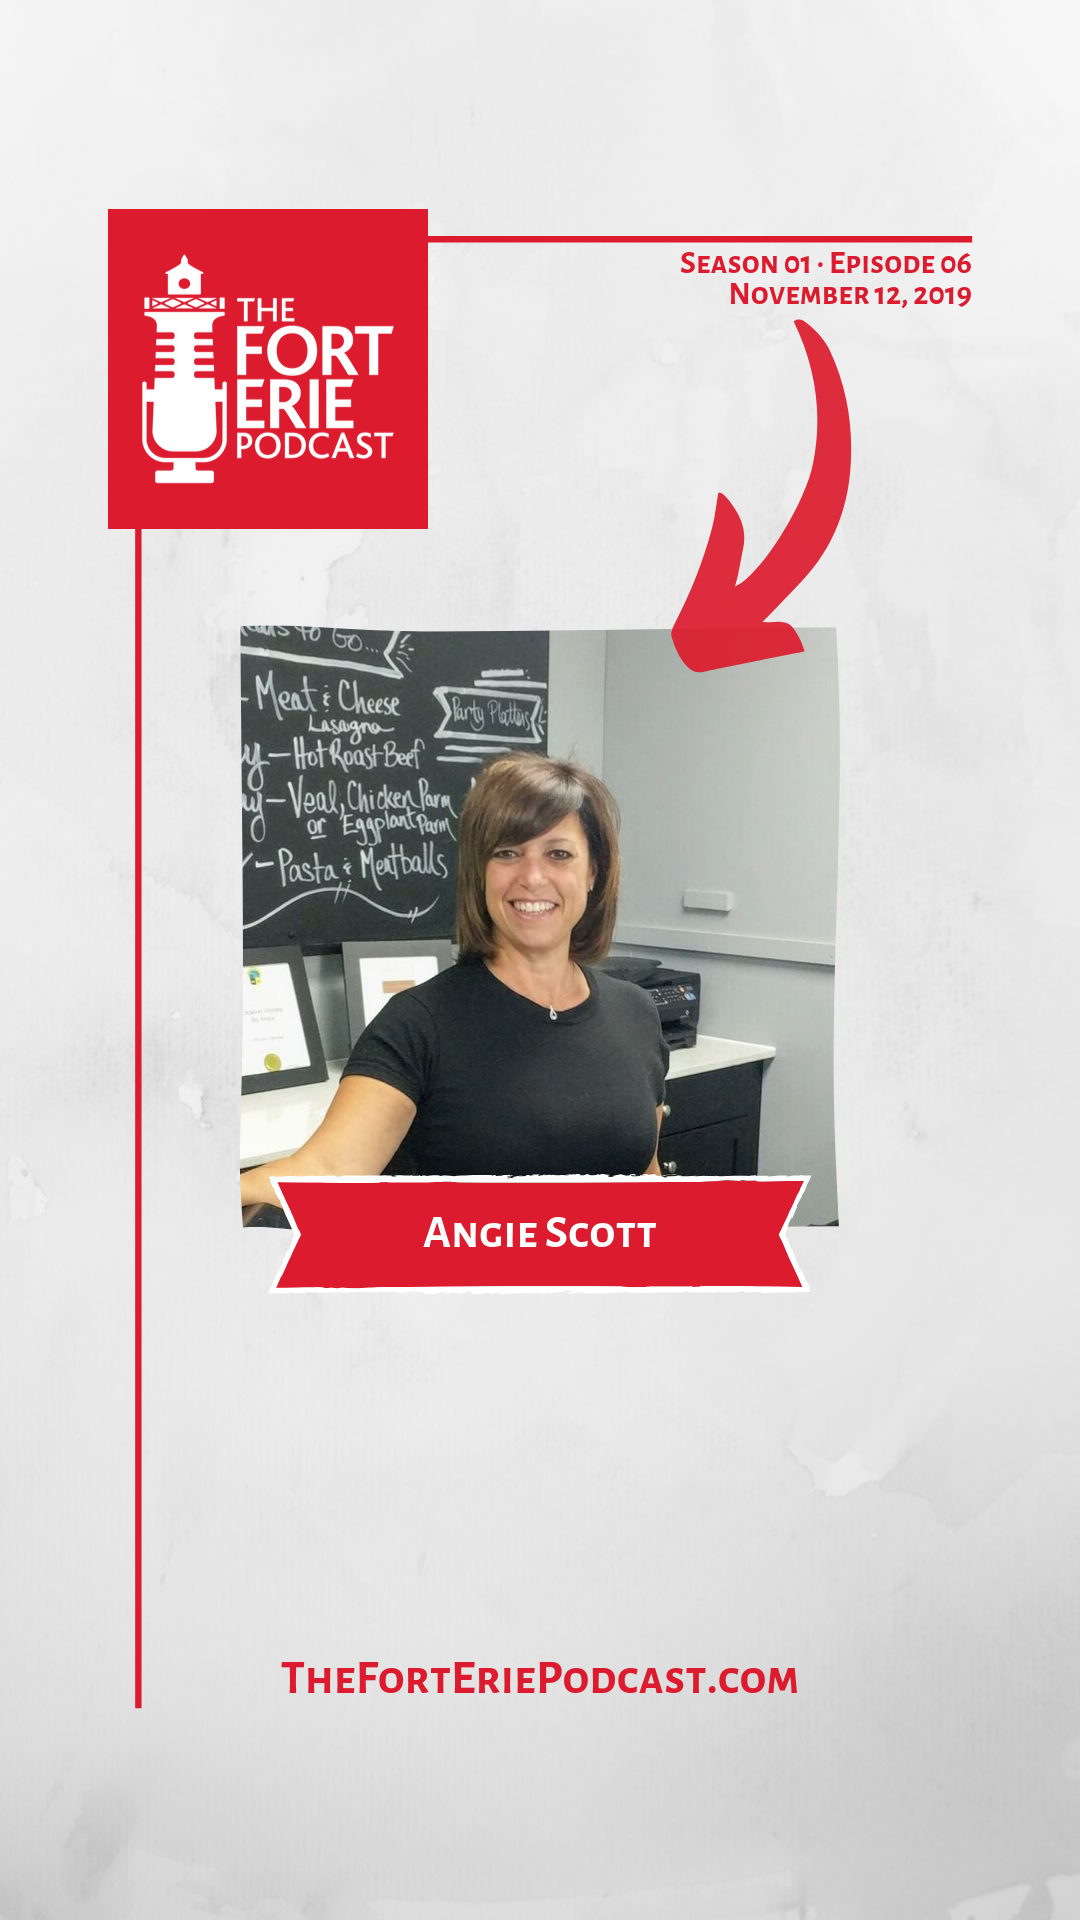 In case you aren\'t familiar, Angie Scott is the owner and operator of Creative Dining by Angie. Born and raised in Fort Erie, and a proud member of the Fort Erie Chamber of Commerce, Angie shares with me in episode six of The Fort Erie Podcast her journey to running a small business (and feeding a small army) in a small town.